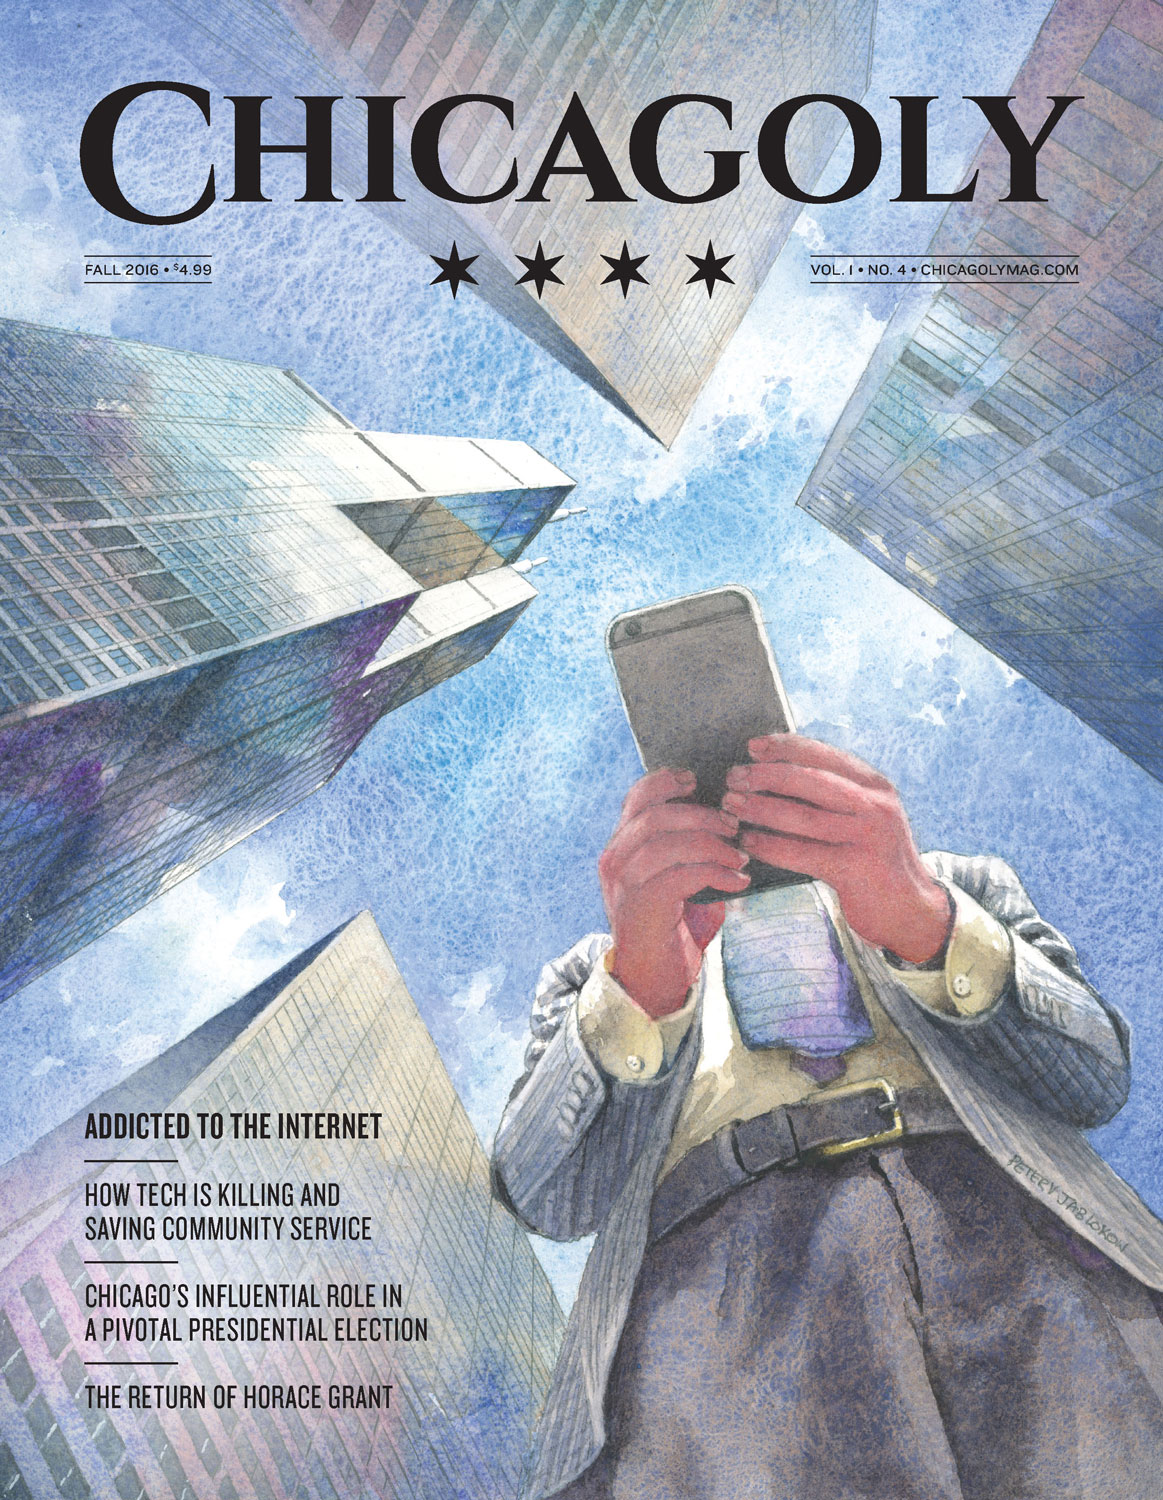 Chicagoly Magazine Cover, fall 2016